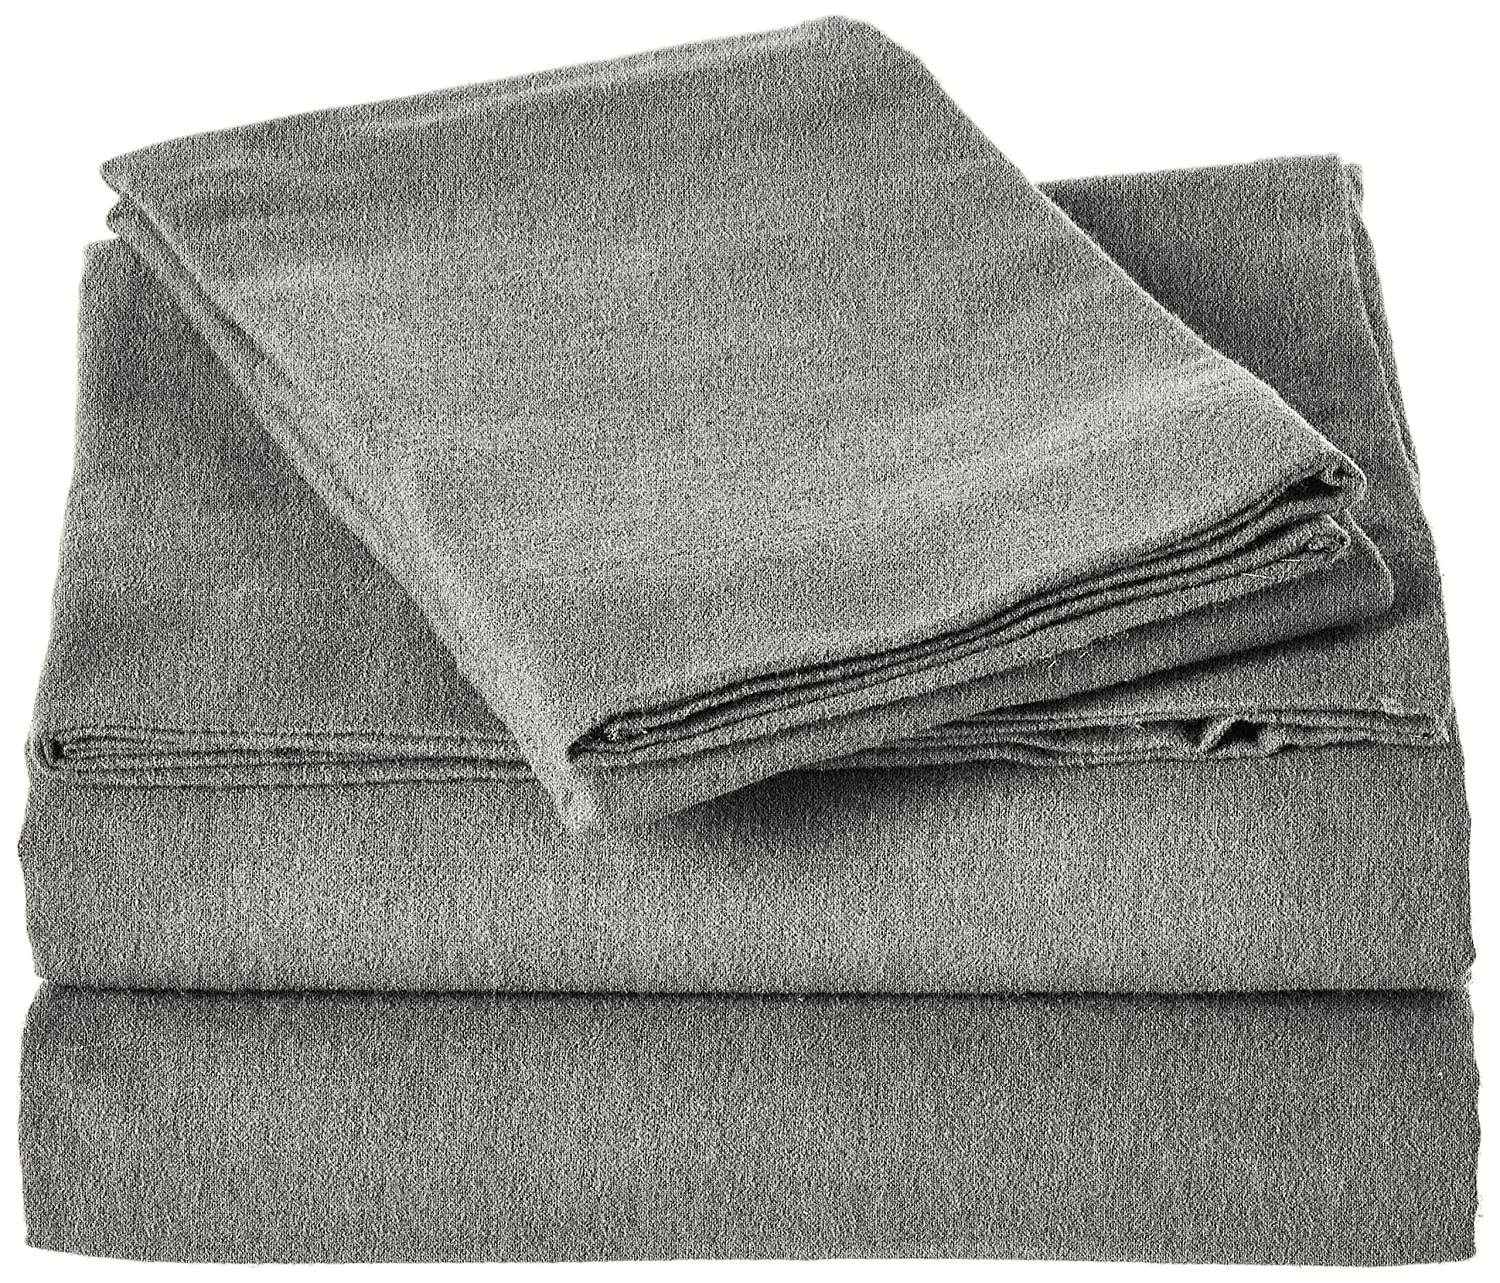 Eddie Bauer Flannel Sheet Set, Twin, Chrome